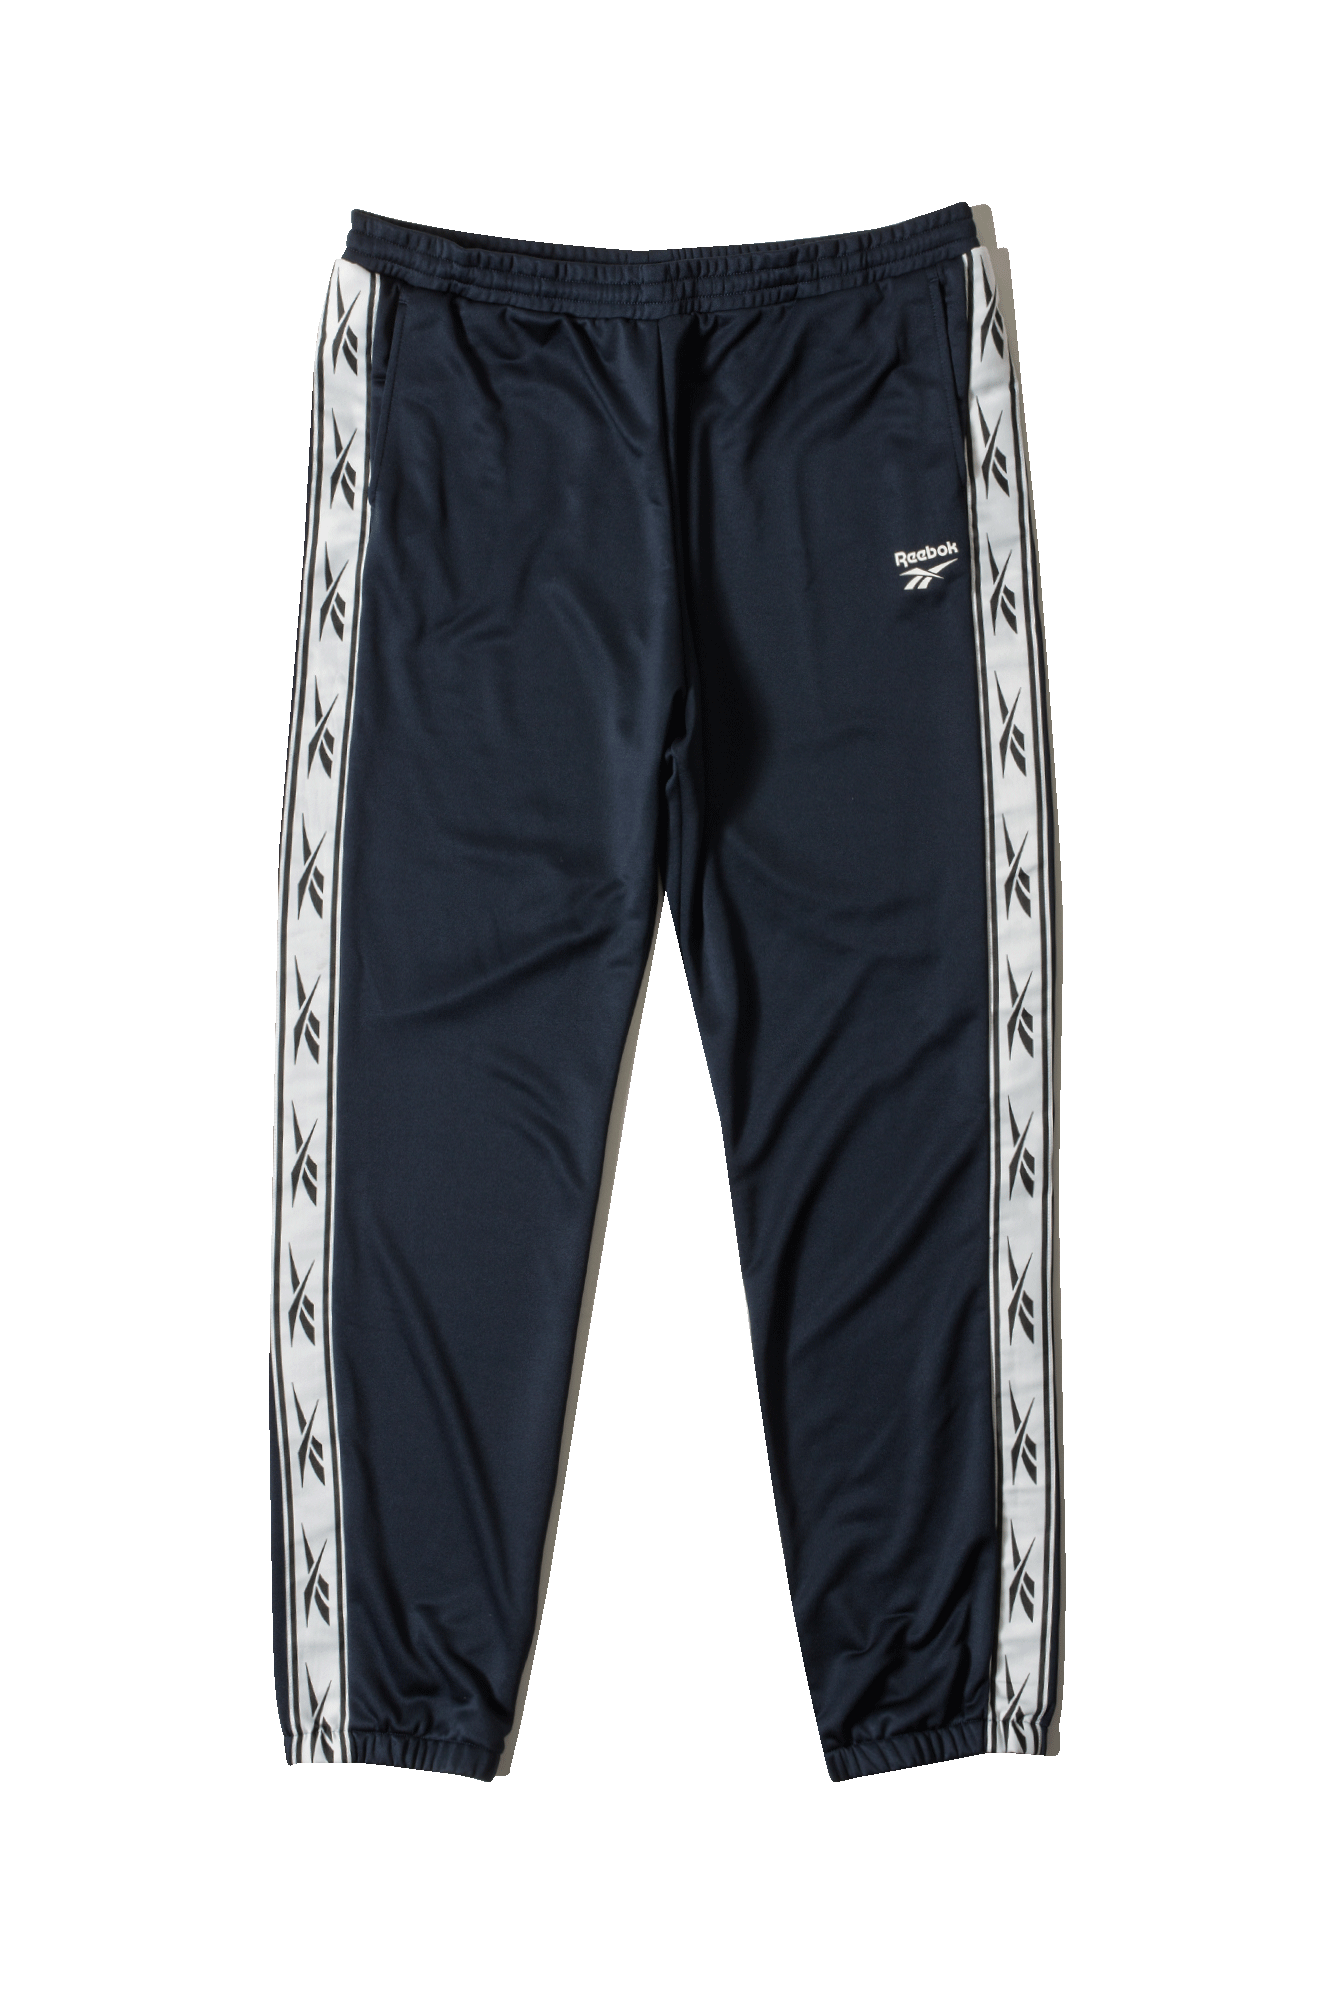 Sweatpants vector. Track pant bk